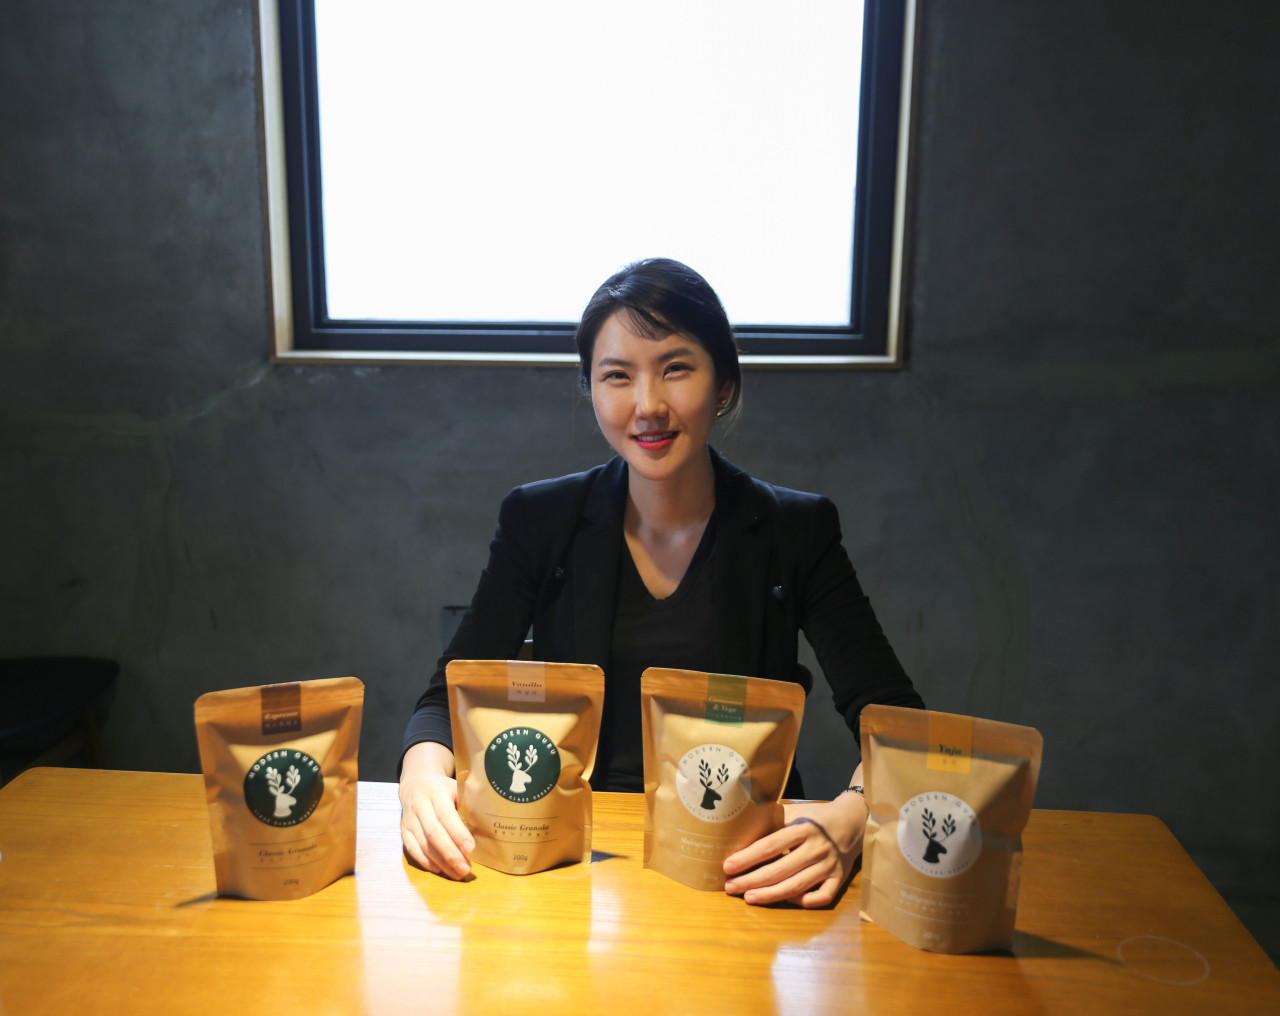 Lim Ji-young poses with her granola products. (Job Company)